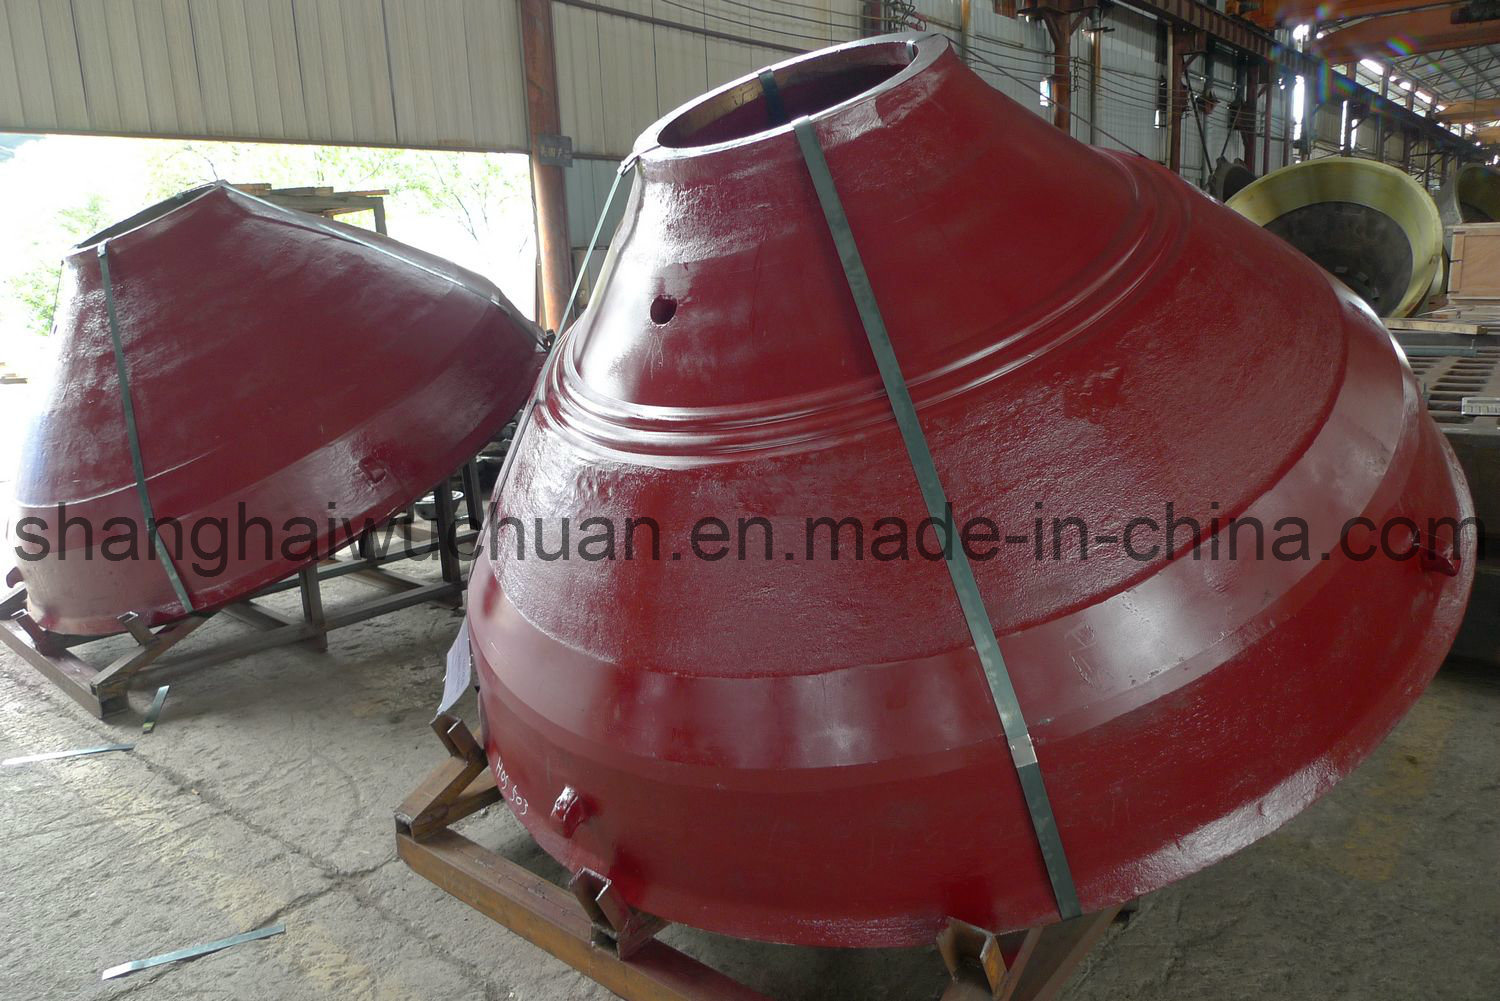 Mantles for Faco Cone Crusher